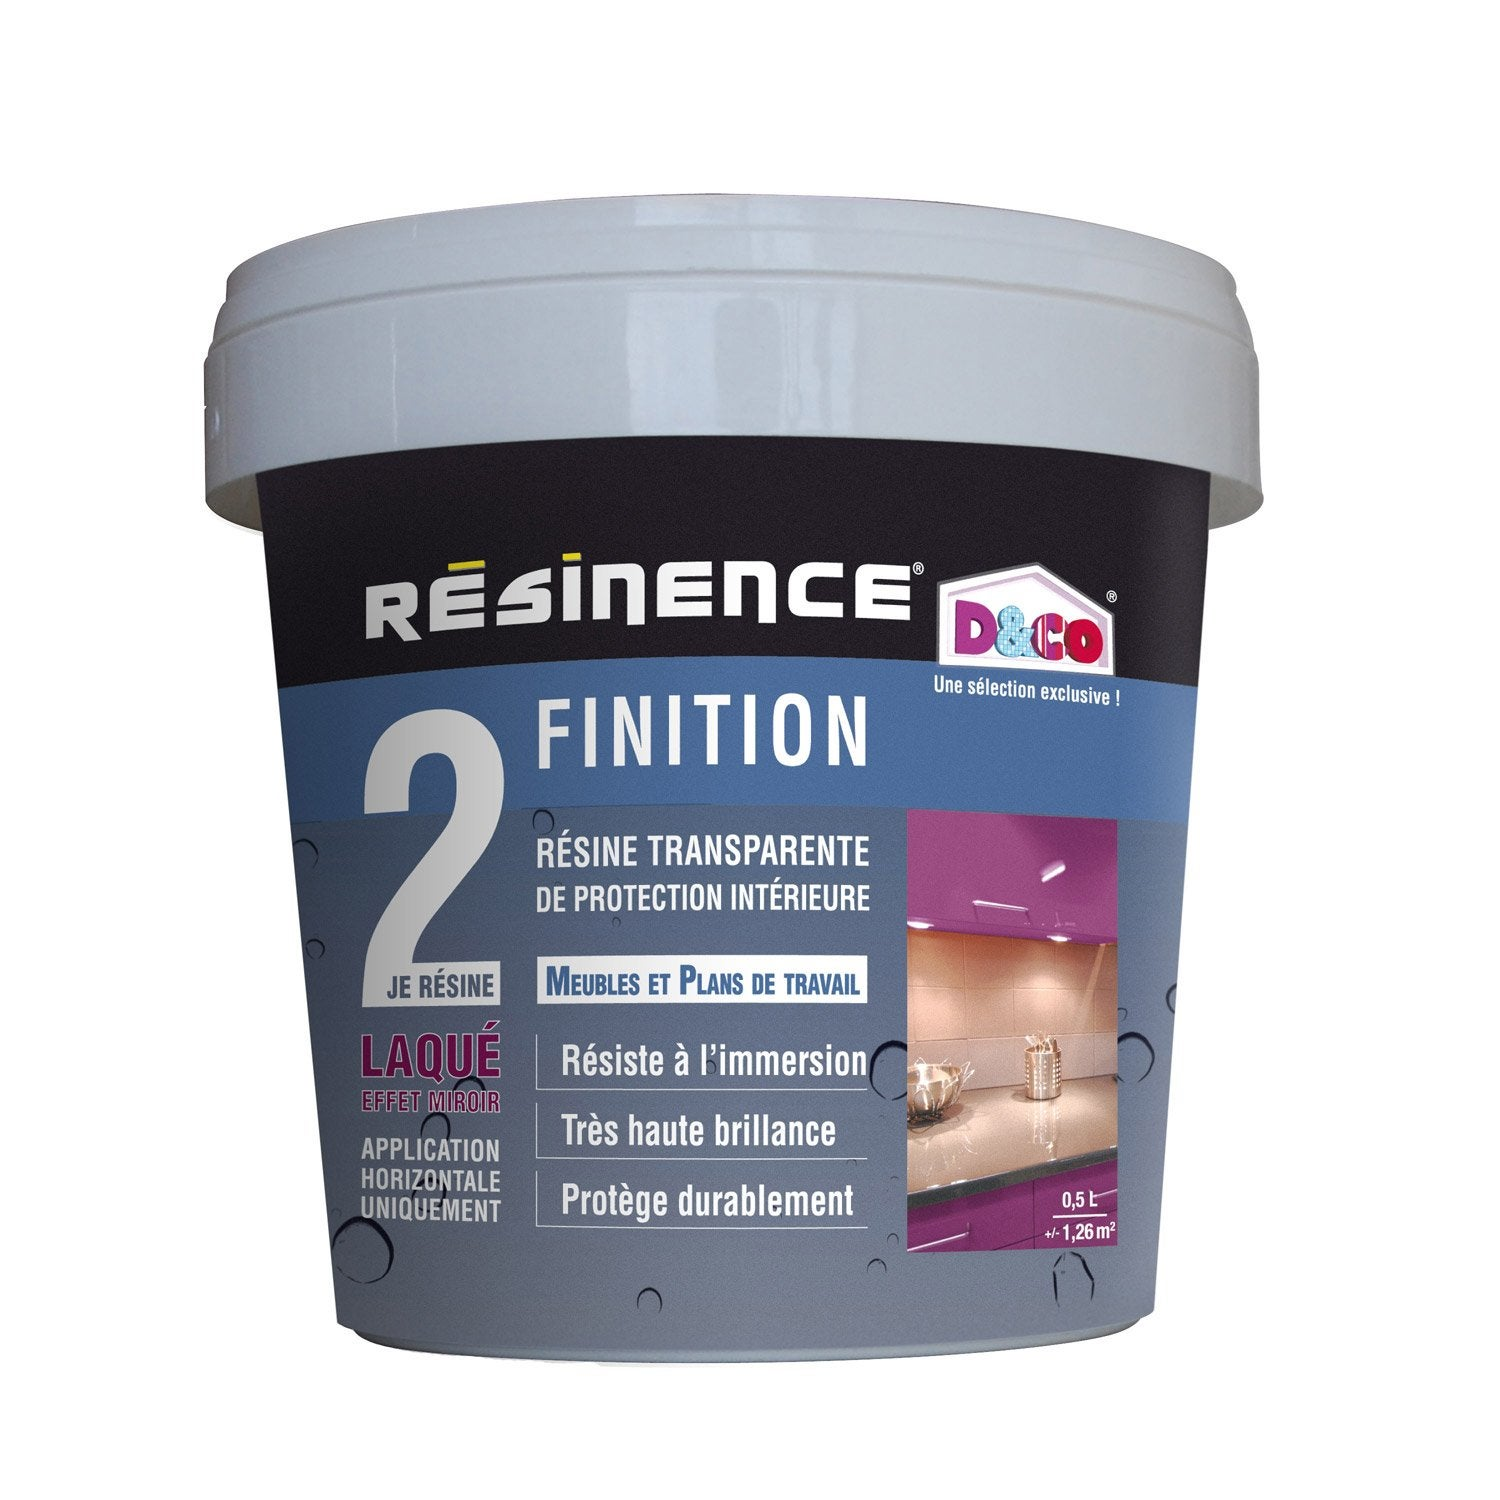 R sine de finition protecteur resinence incolore 0 5 l for Peinture carrelage resinence